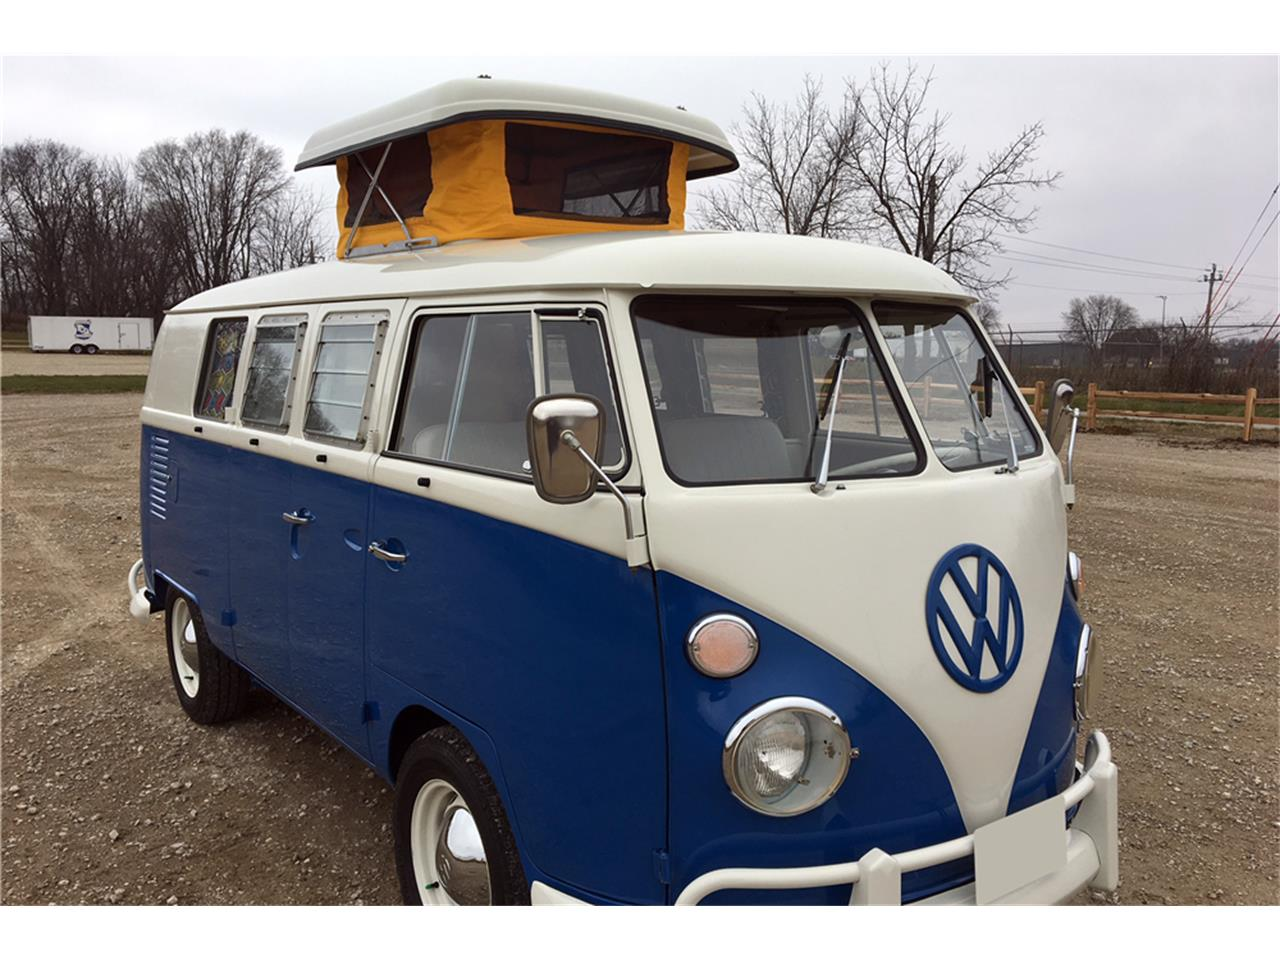 Large Picture of 1965 Volkswagen Westfalia Camper located in Arizona Auction Vehicle Offered by Barrett-Jackson Auctions - MNMZ